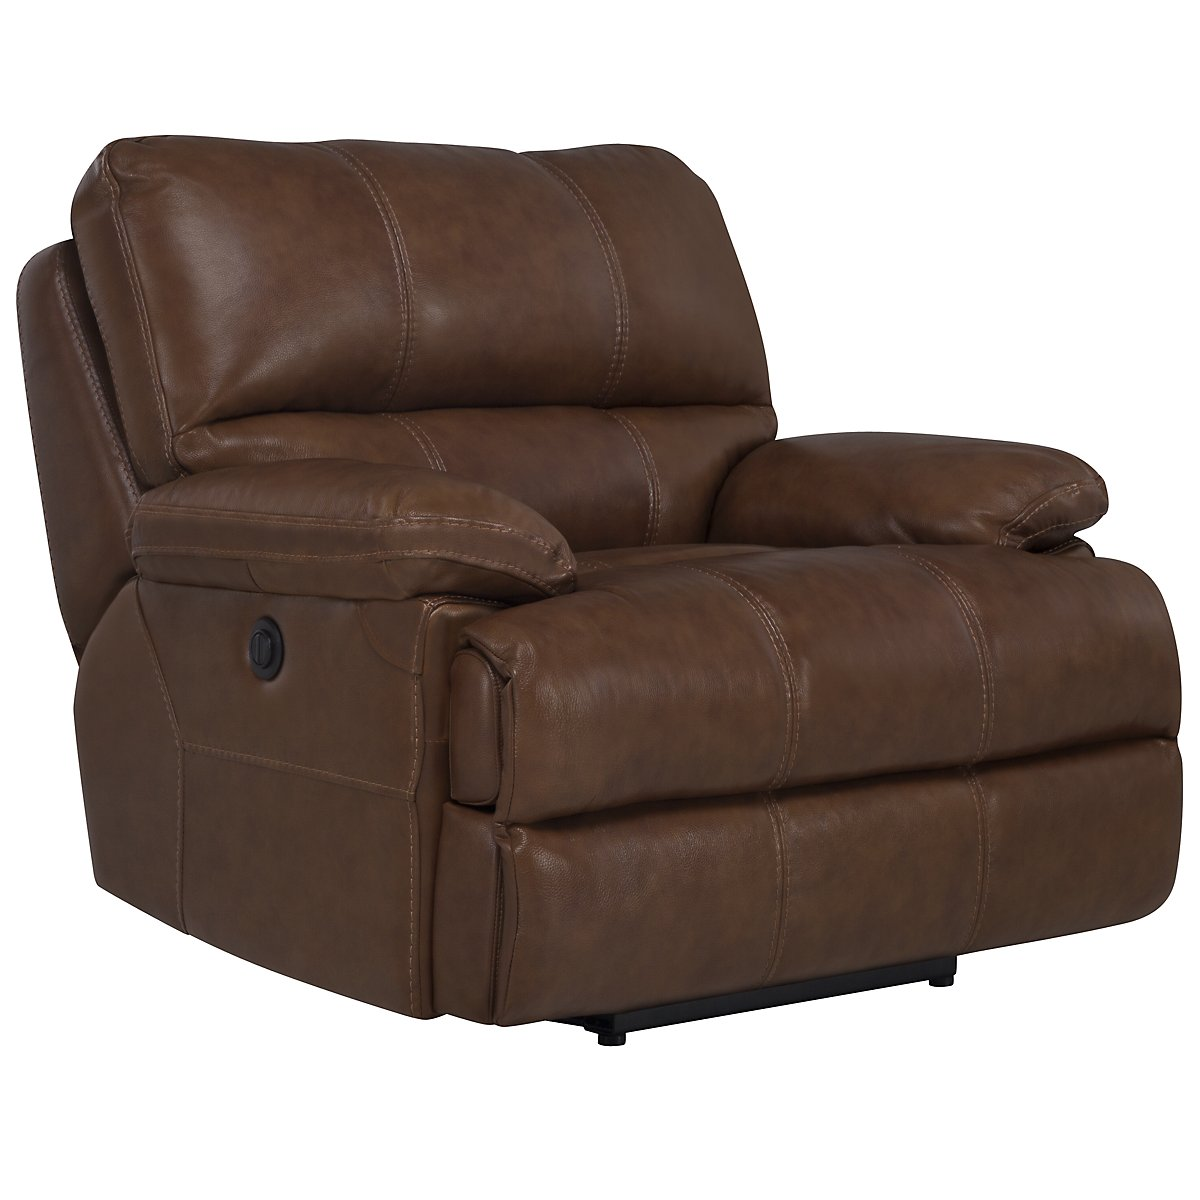 Alton2 Md Brown Leather & Vinyl Power Recliner